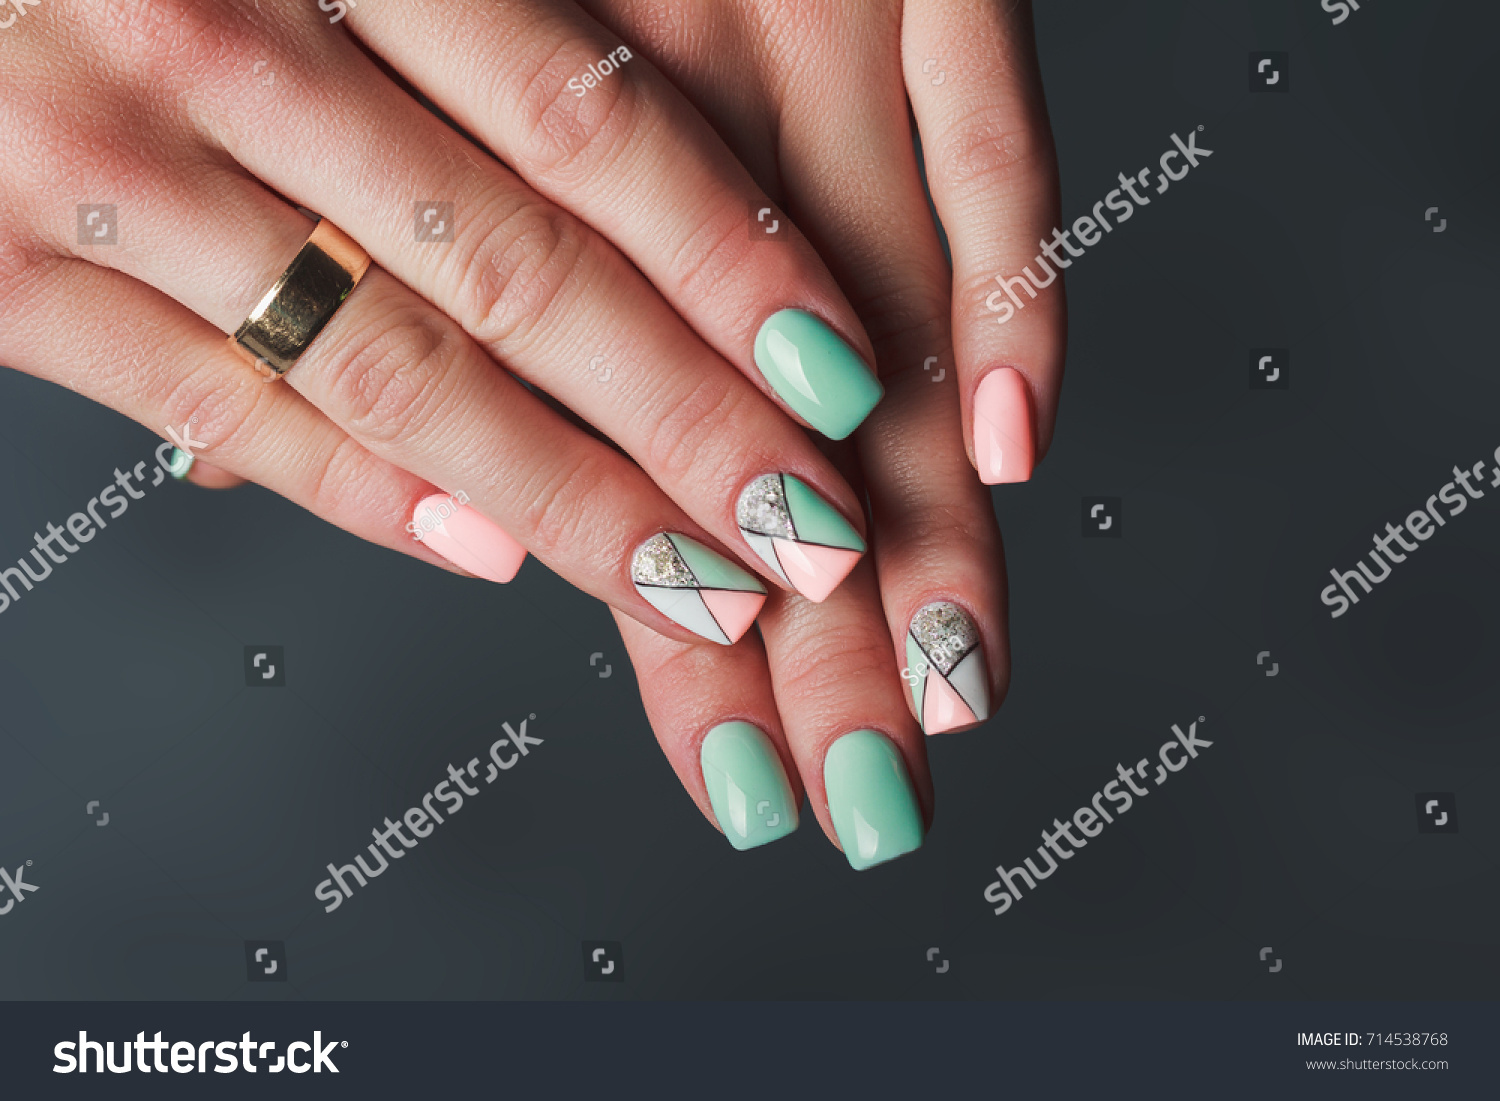 Geometry Nail Art Design Pink Green Stock Photo (Edit Now) 714538768 ...